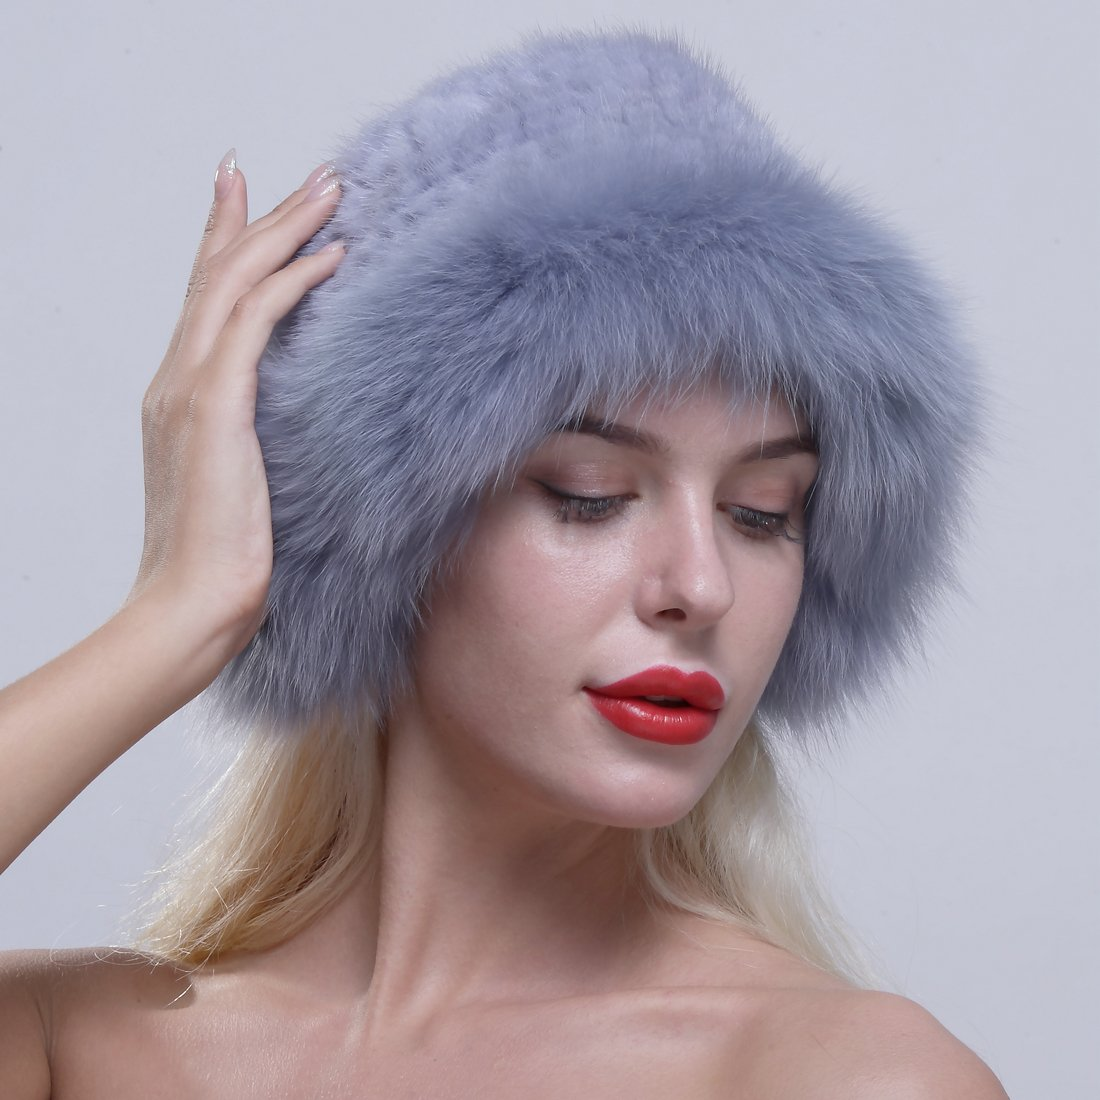 URSFUR Genuine Fox Fur Roller Hat with Knit Mink Top Sapphire by URSFUR (Image #6)